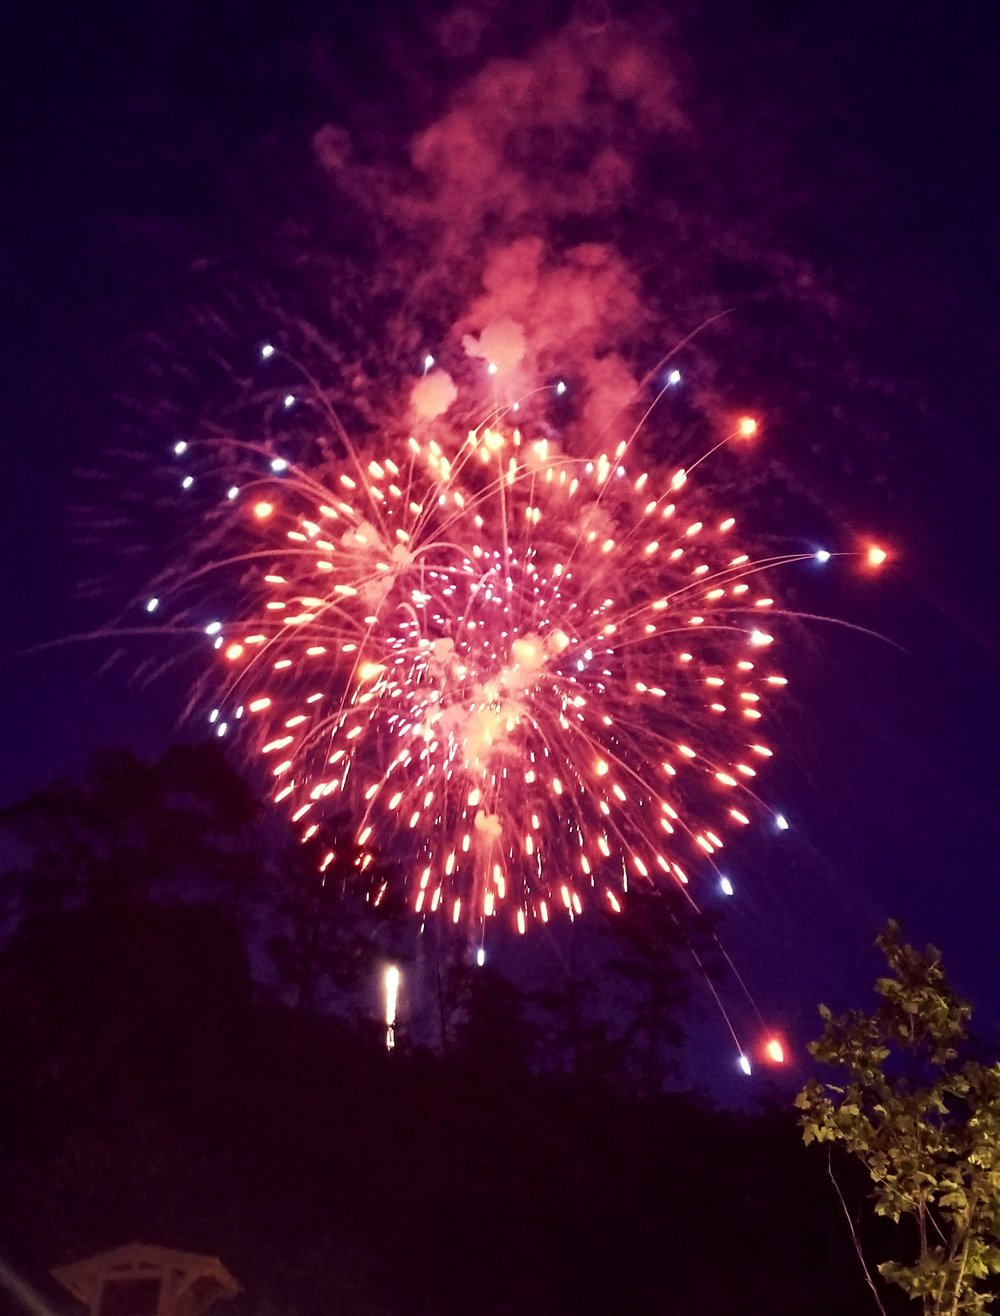 Every night of the Star Spangled Summer ends with a grand fireworks show set to music.